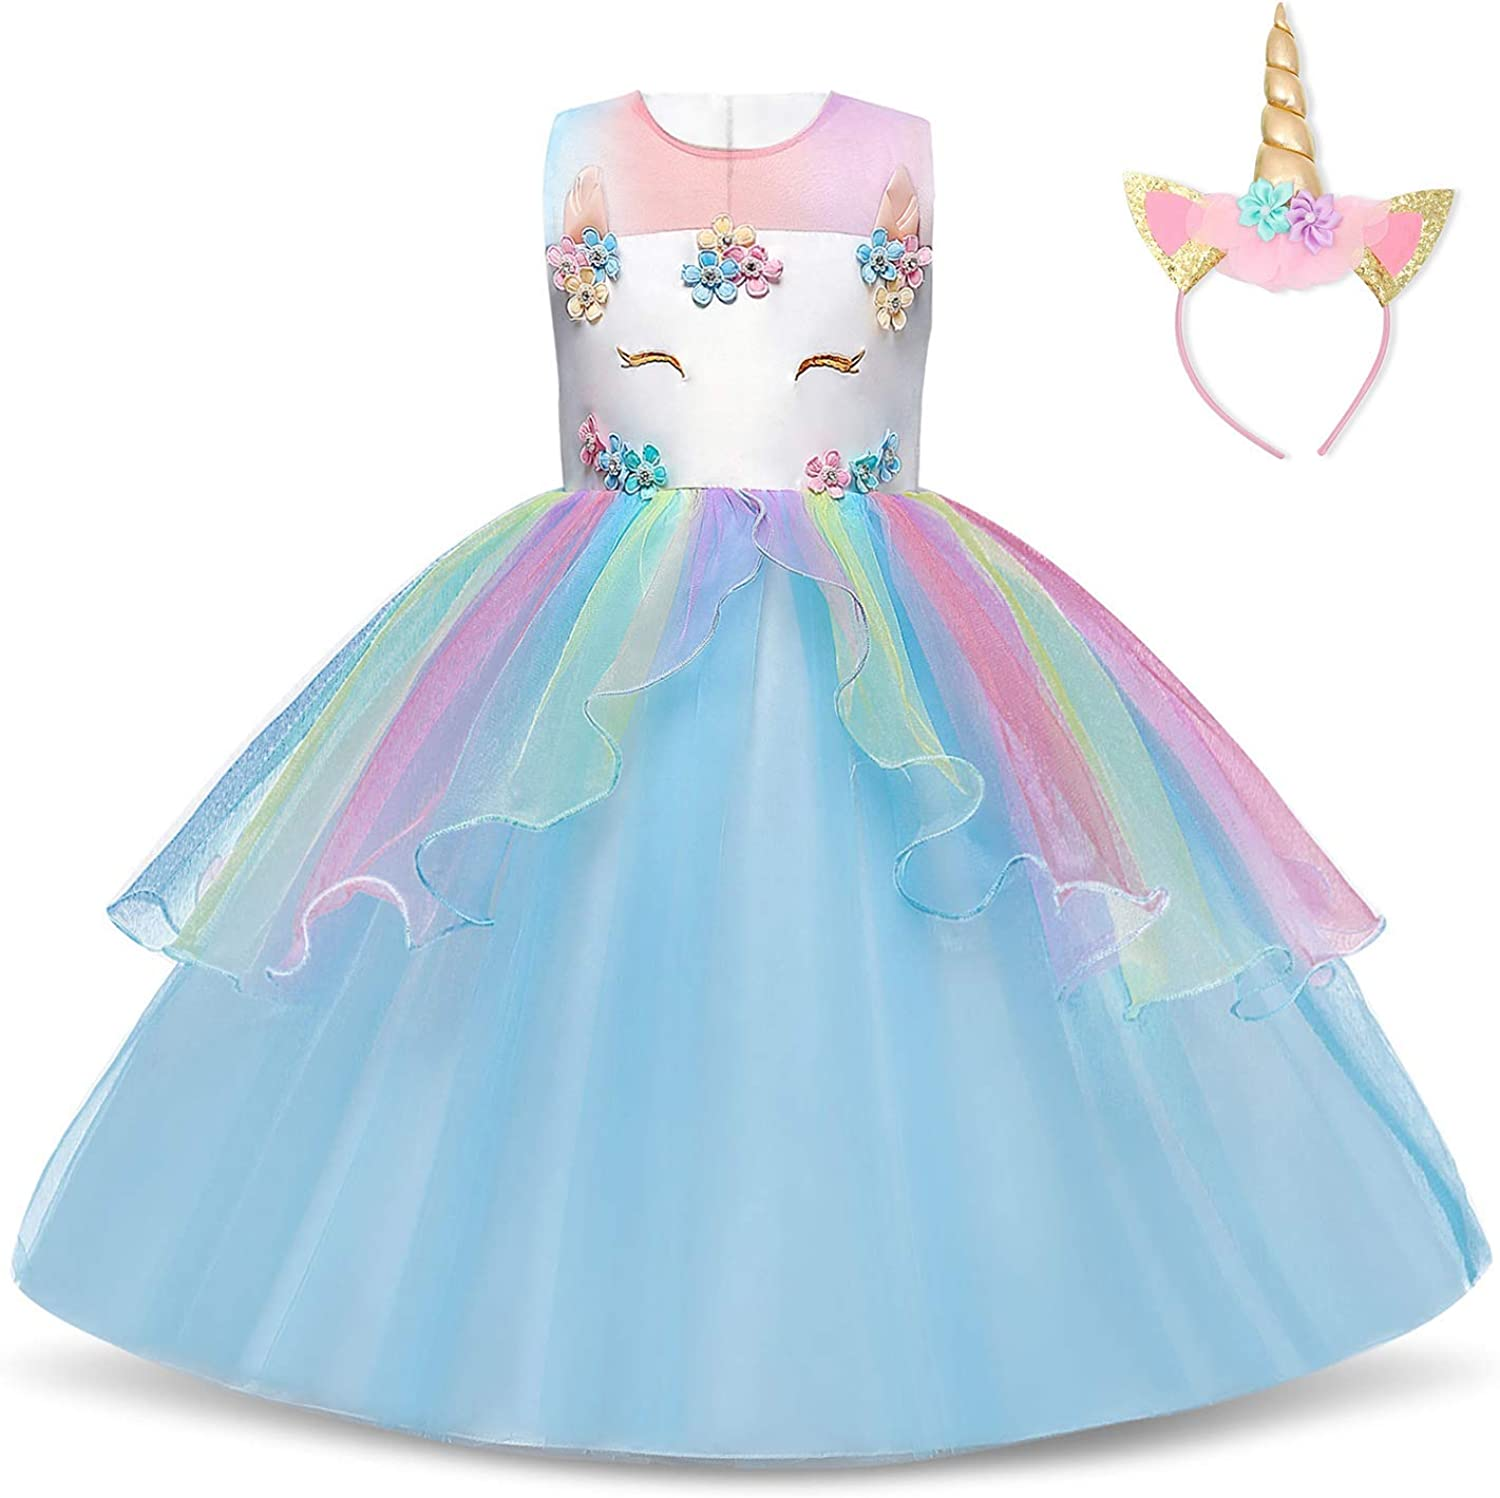 TTYAOVO Unicorn Dress for Girls Kids Teens Fancy Party Costume 2-14 Years